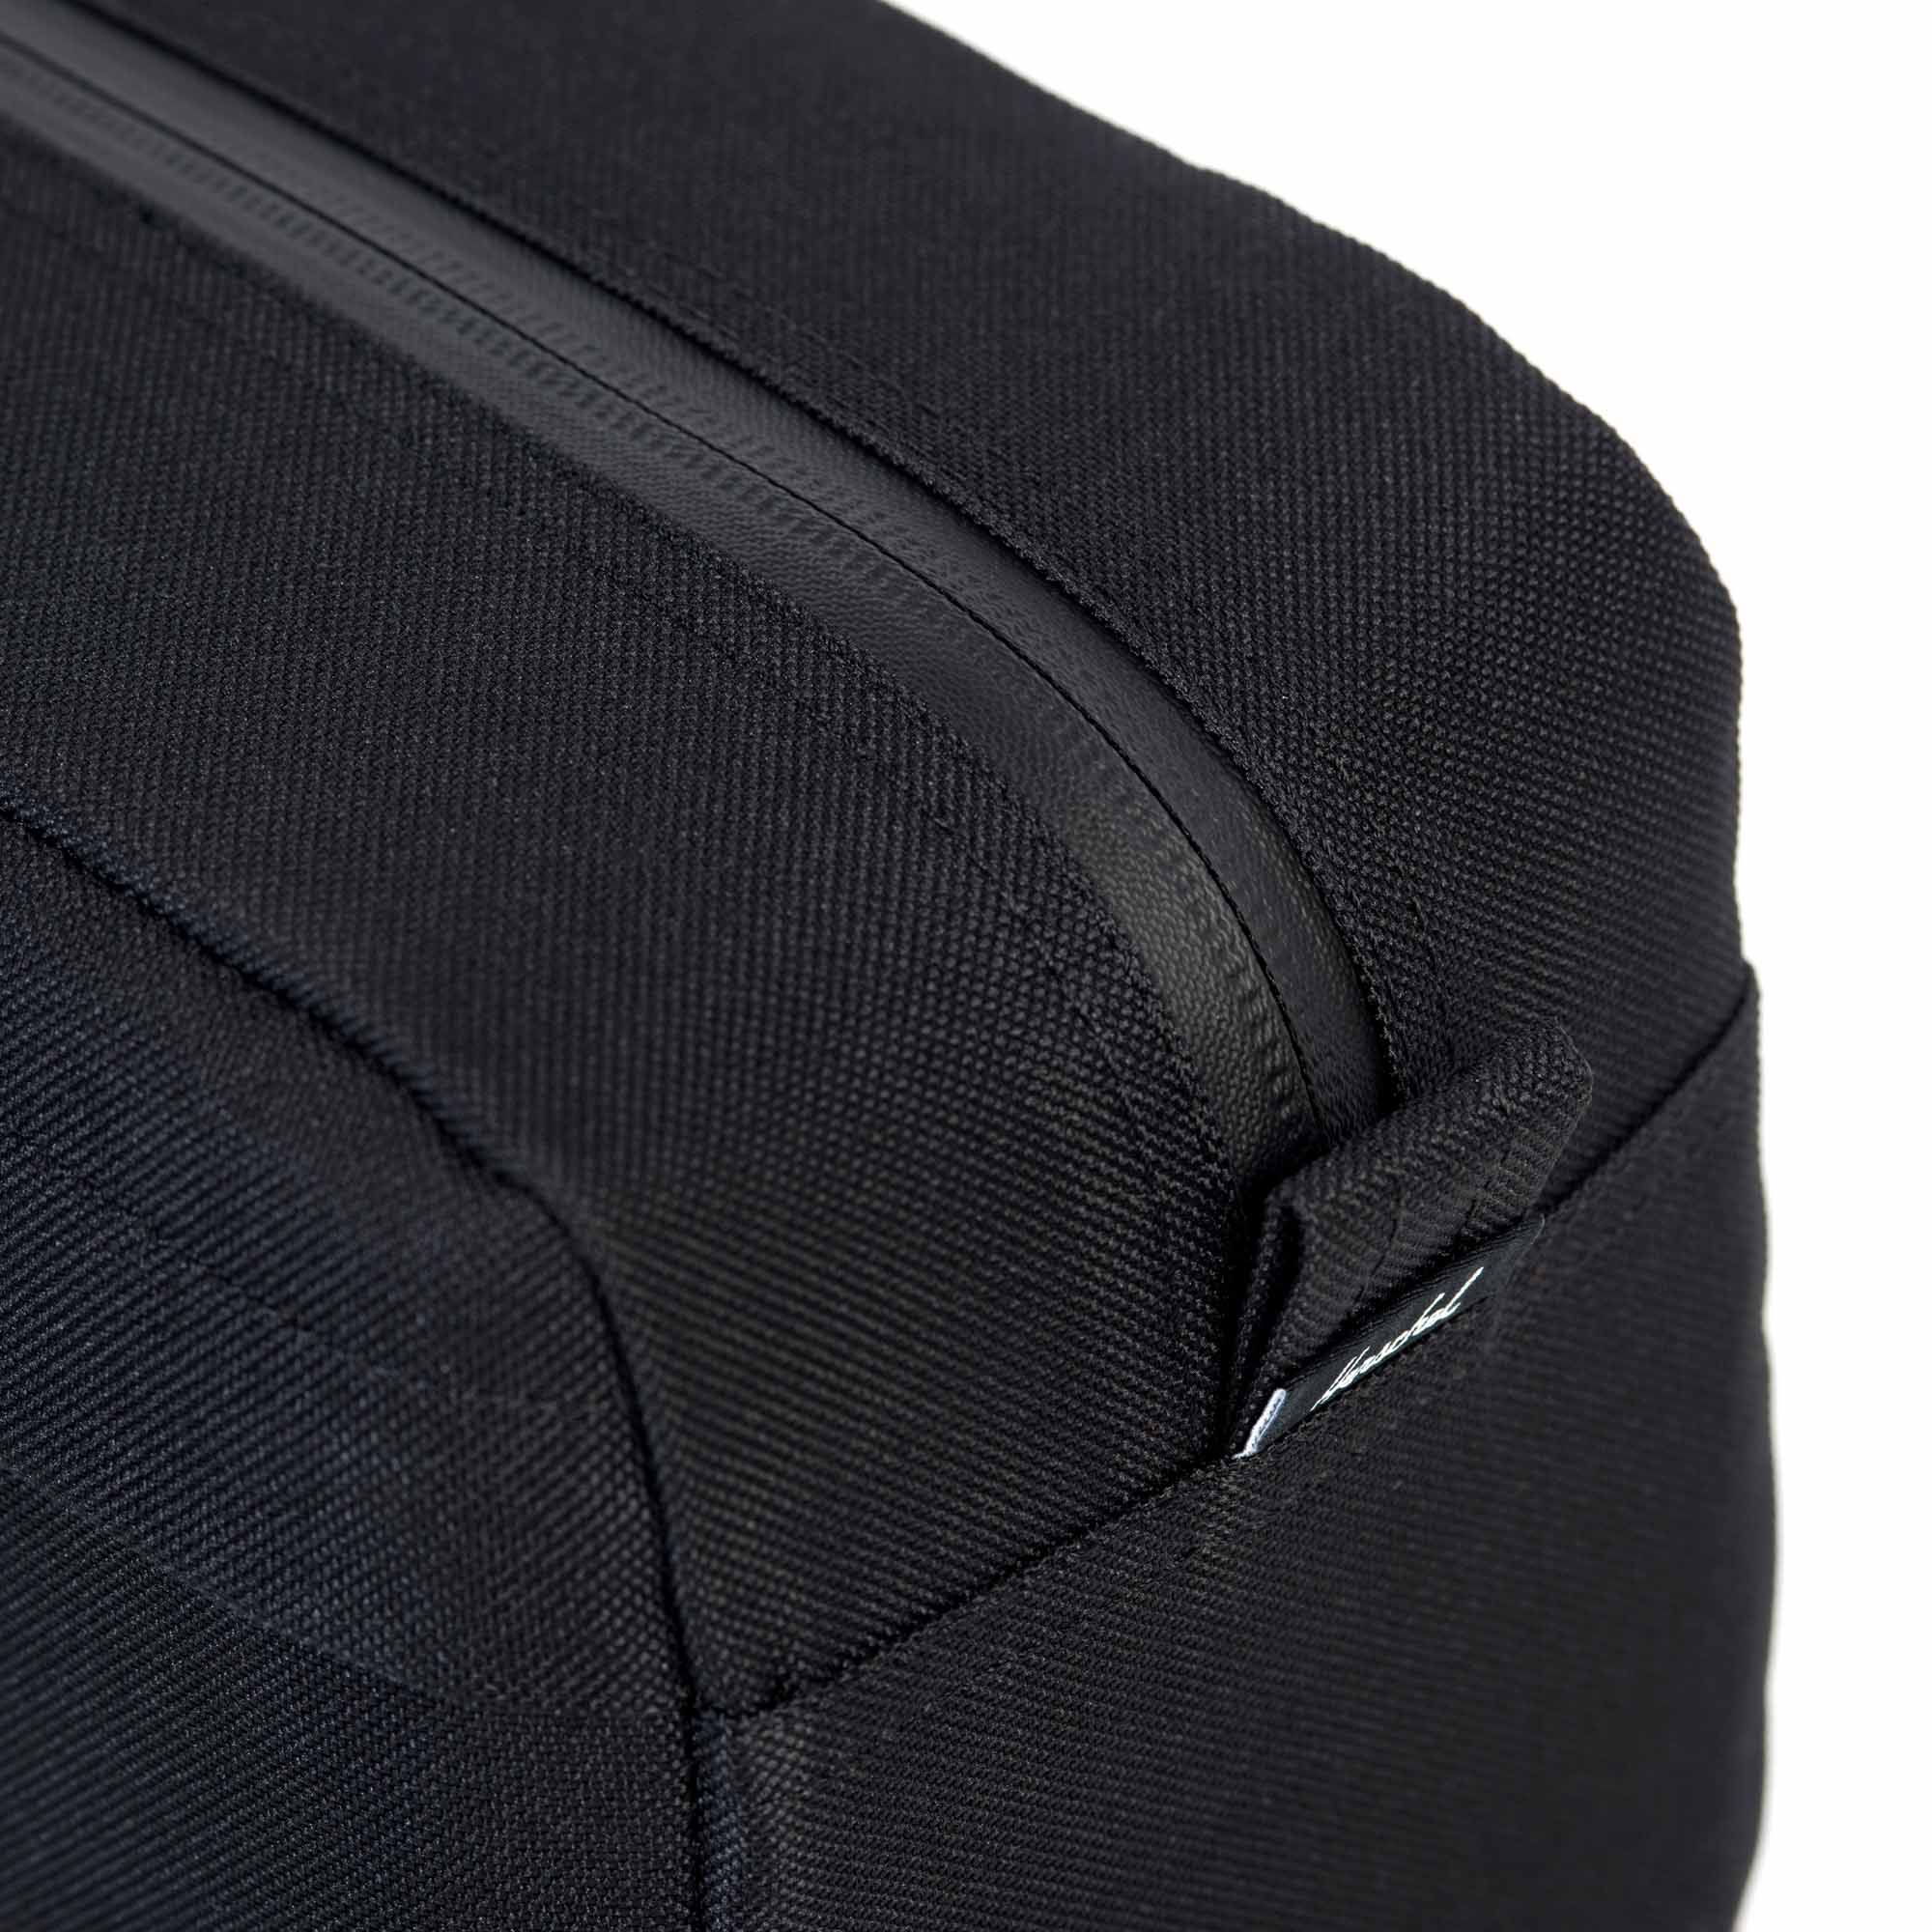 8186717ce19 Perfectly sized for carrying in-flight essentials, the compact Chapter  Carry-On travel kit features a convenient carrying handle and an internal  mesh ...